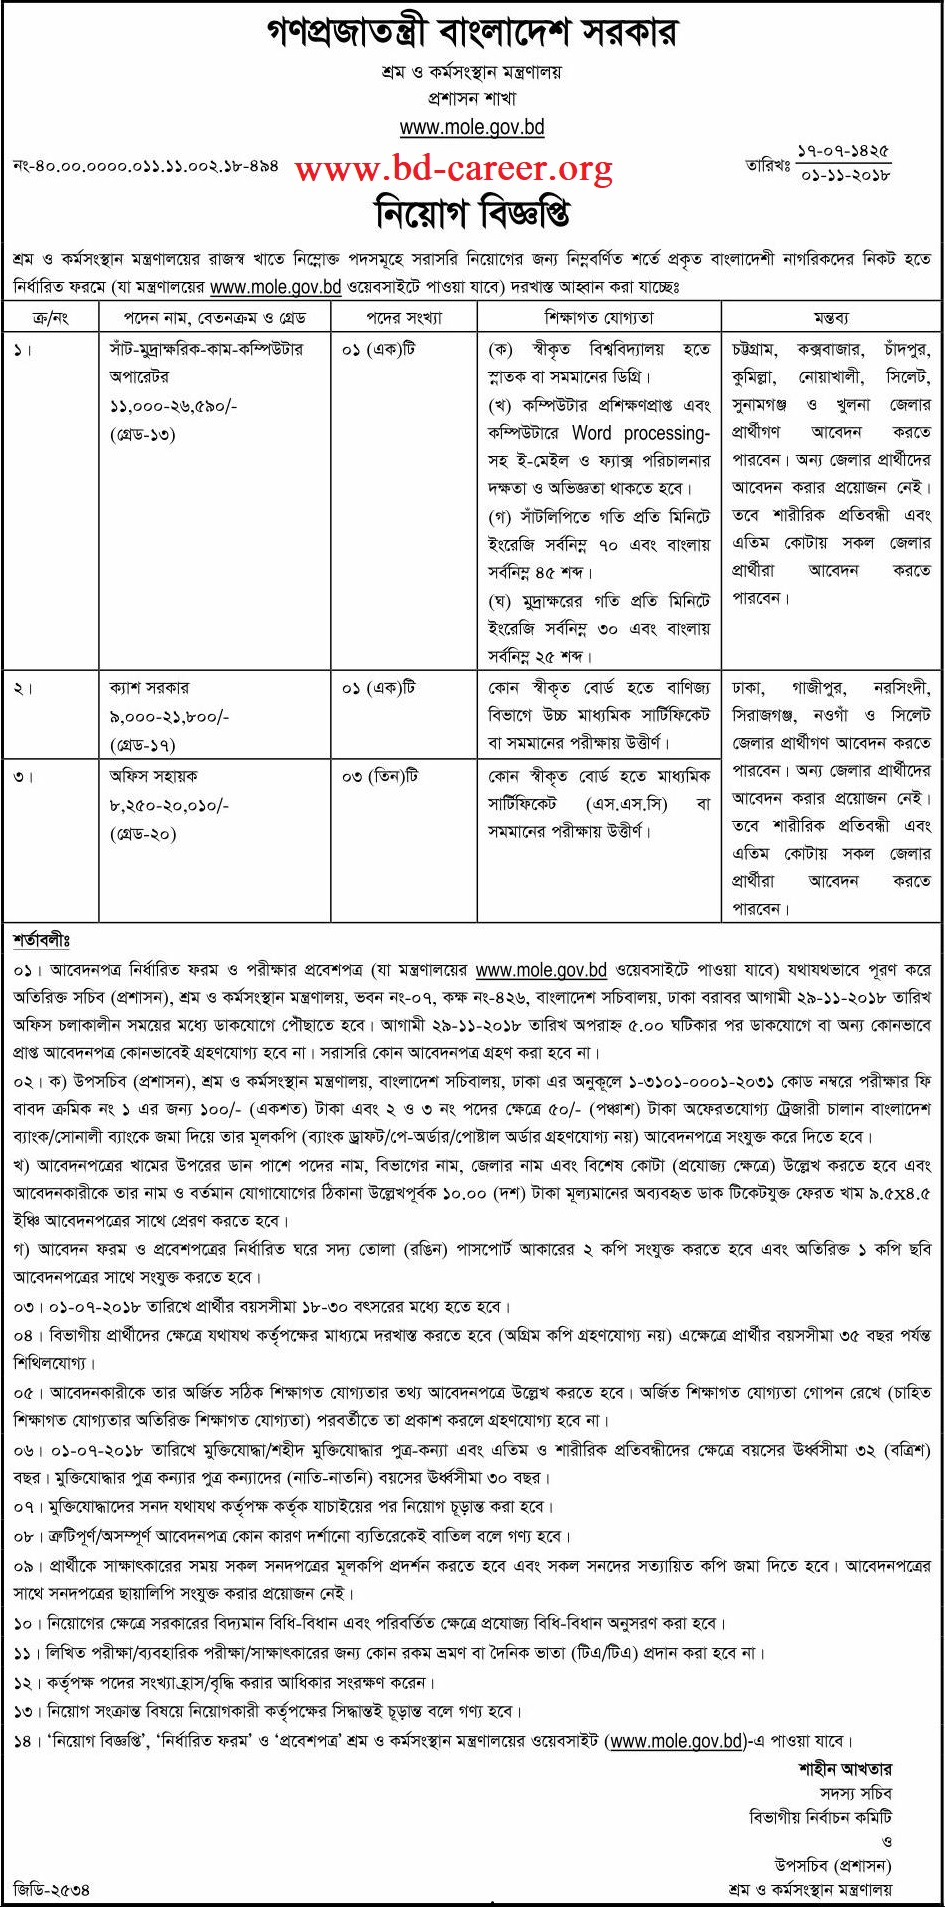 MOLE Job Circular Apply - - www.mole.gov.bd